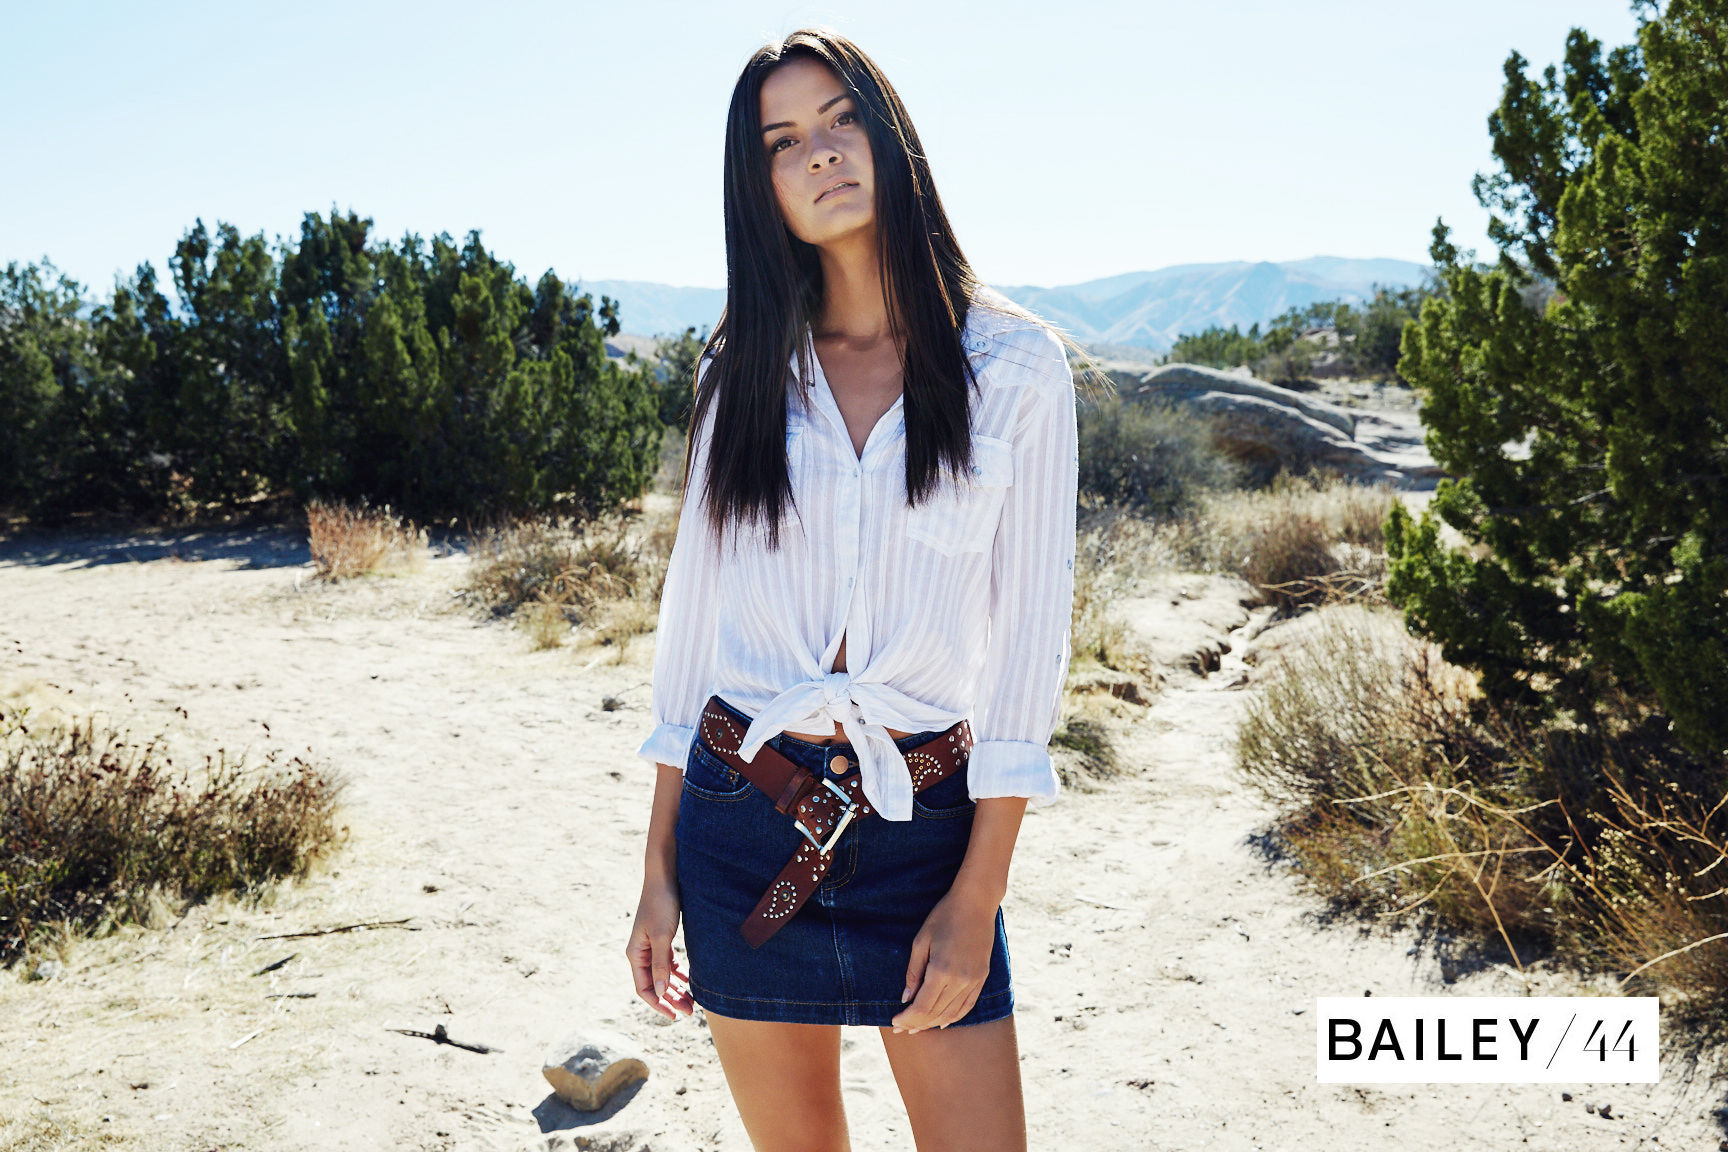 GLAMPR produces Bailey 44 campaign